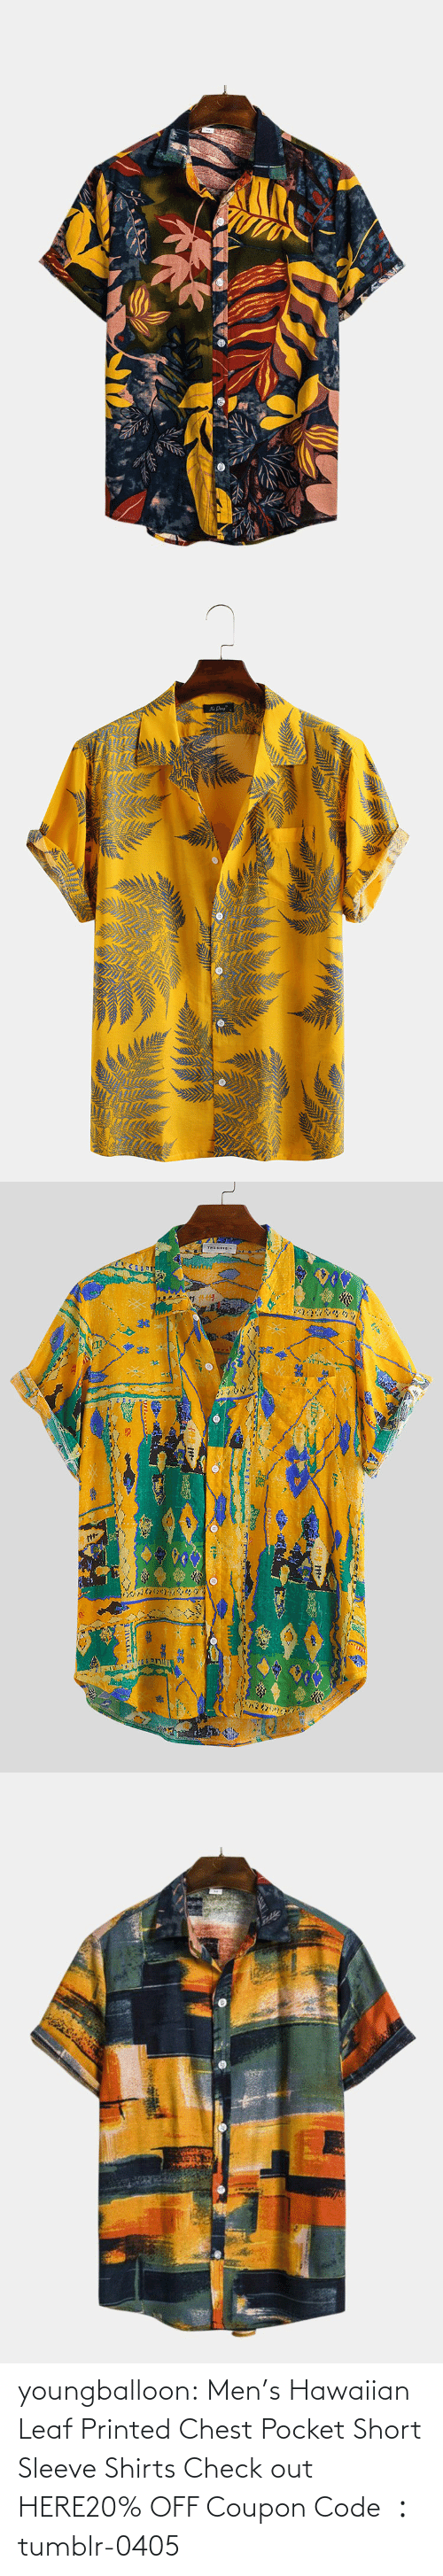 out: youngballoon:  Men's Hawaiian Leaf Printed Chest Pocket Short Sleeve Shirts Check out HERE20% OFF Coupon Code : tumblr-0405